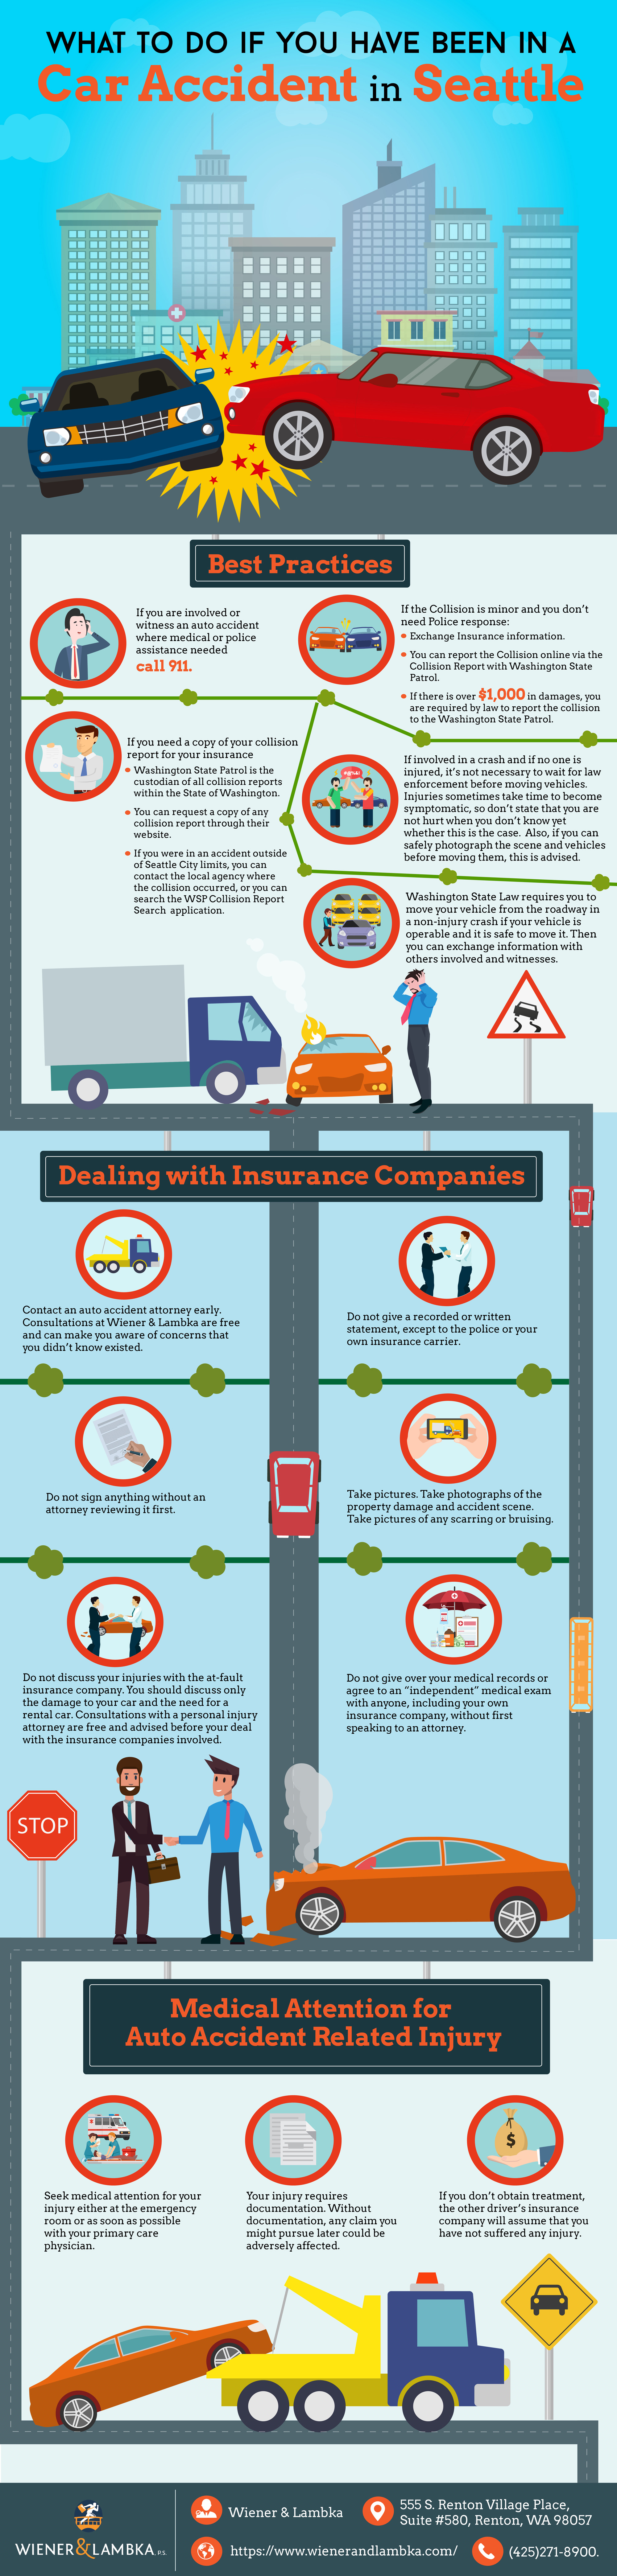 What To Do In Case Of Car Accident [Infographic]